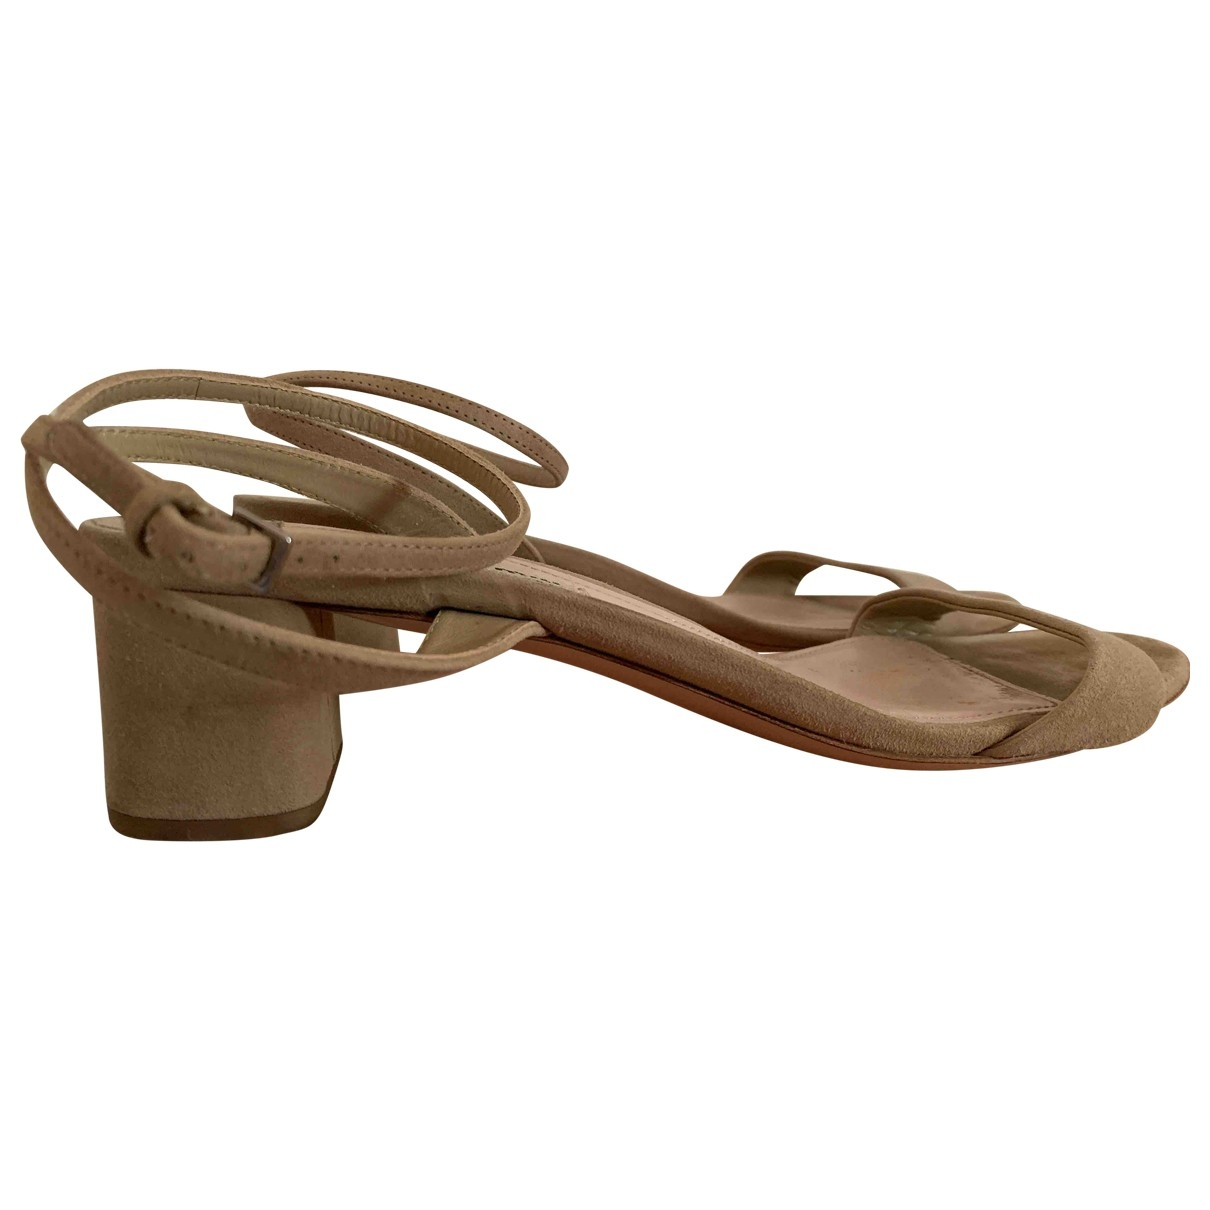 Miu Miu \N Beige Suede Sandals for Women 38 EU